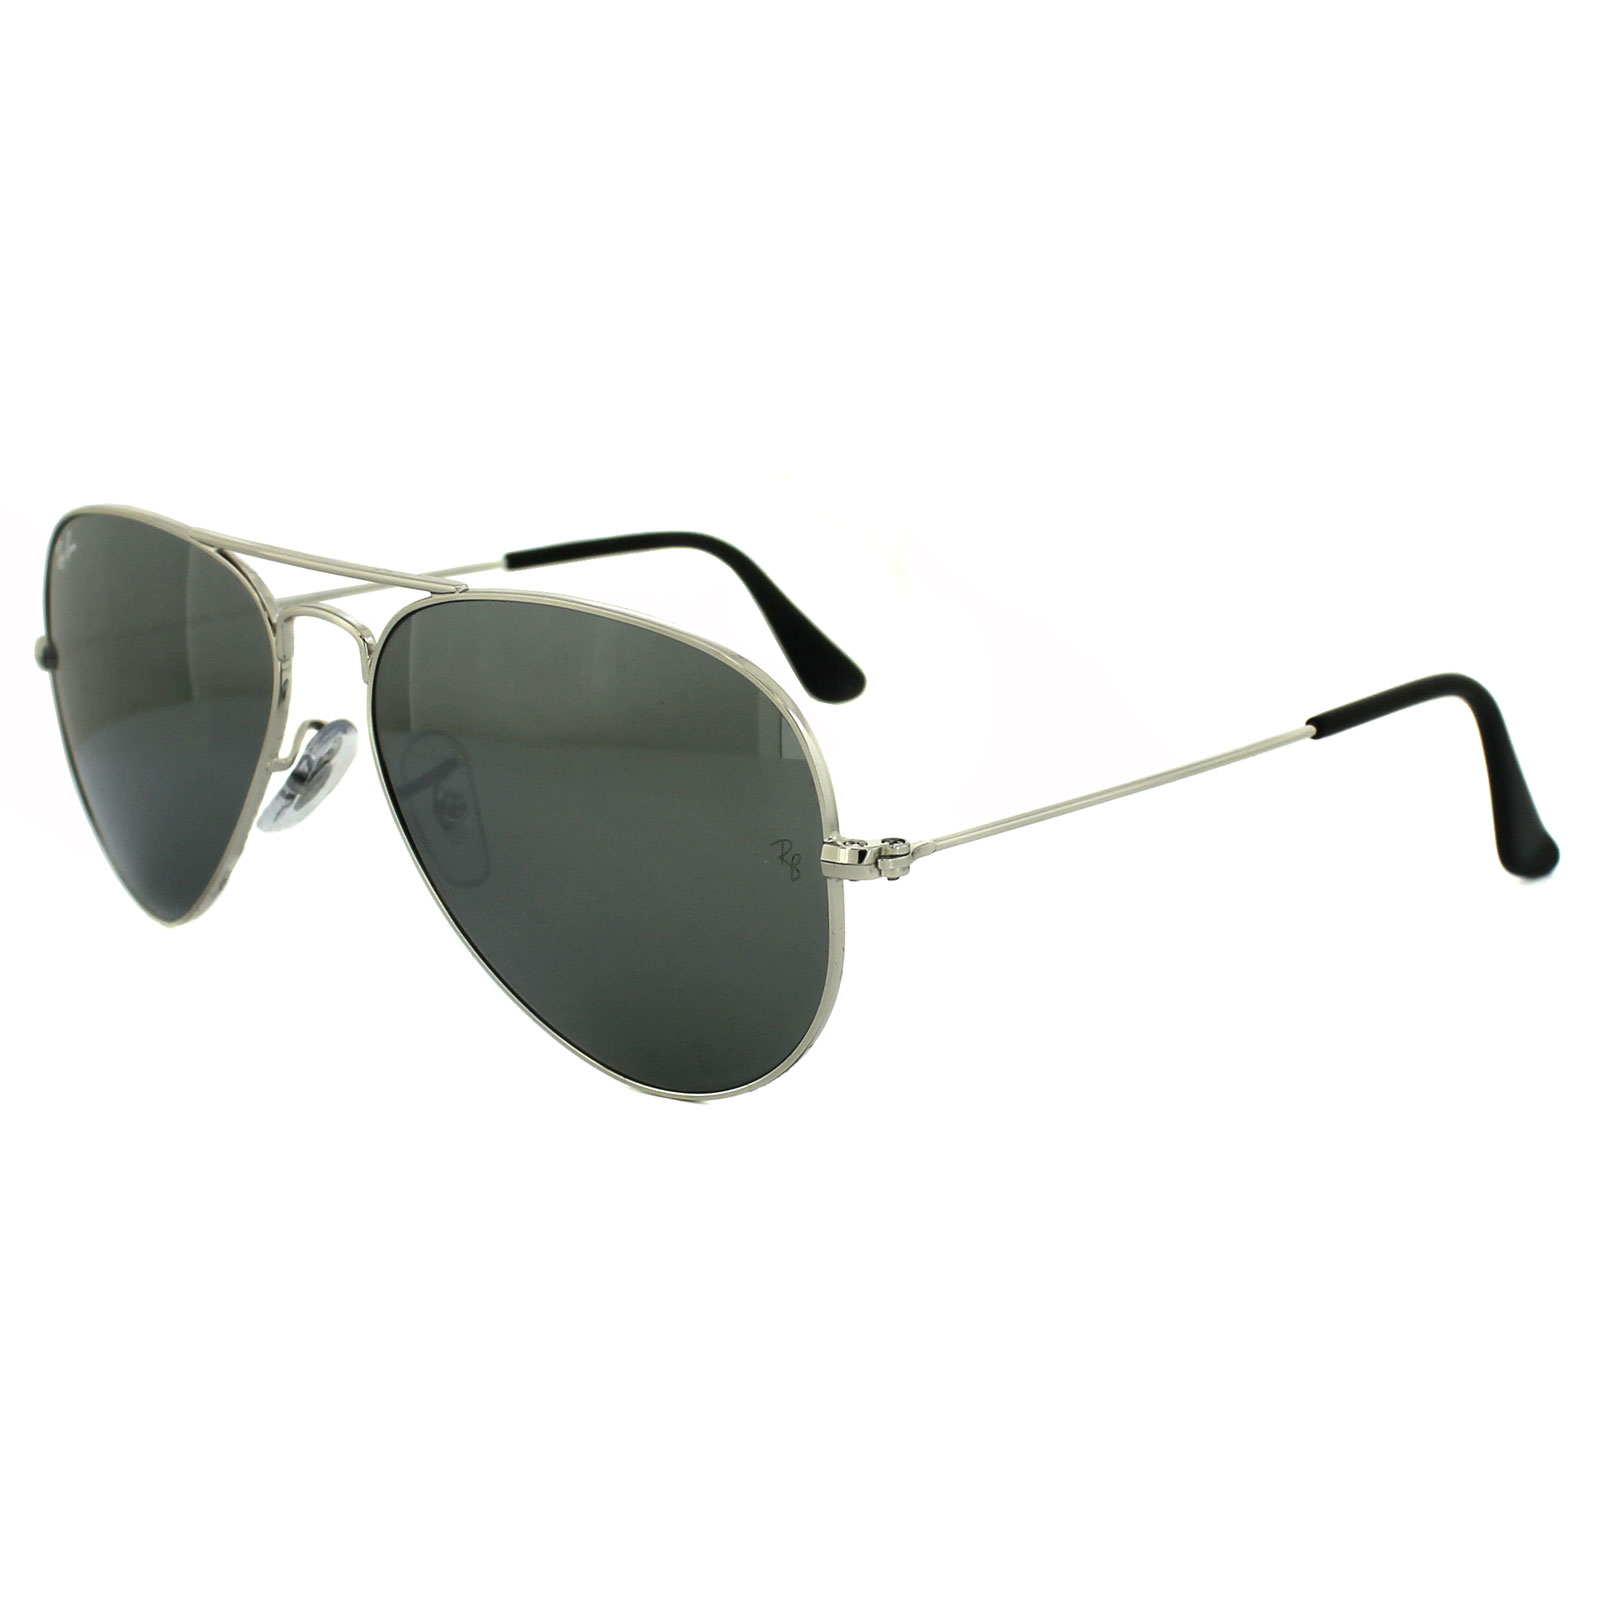 Cheap Ray-Ban Aviator 3025 Sunglasses - Discounted Sunglasses f12005b144